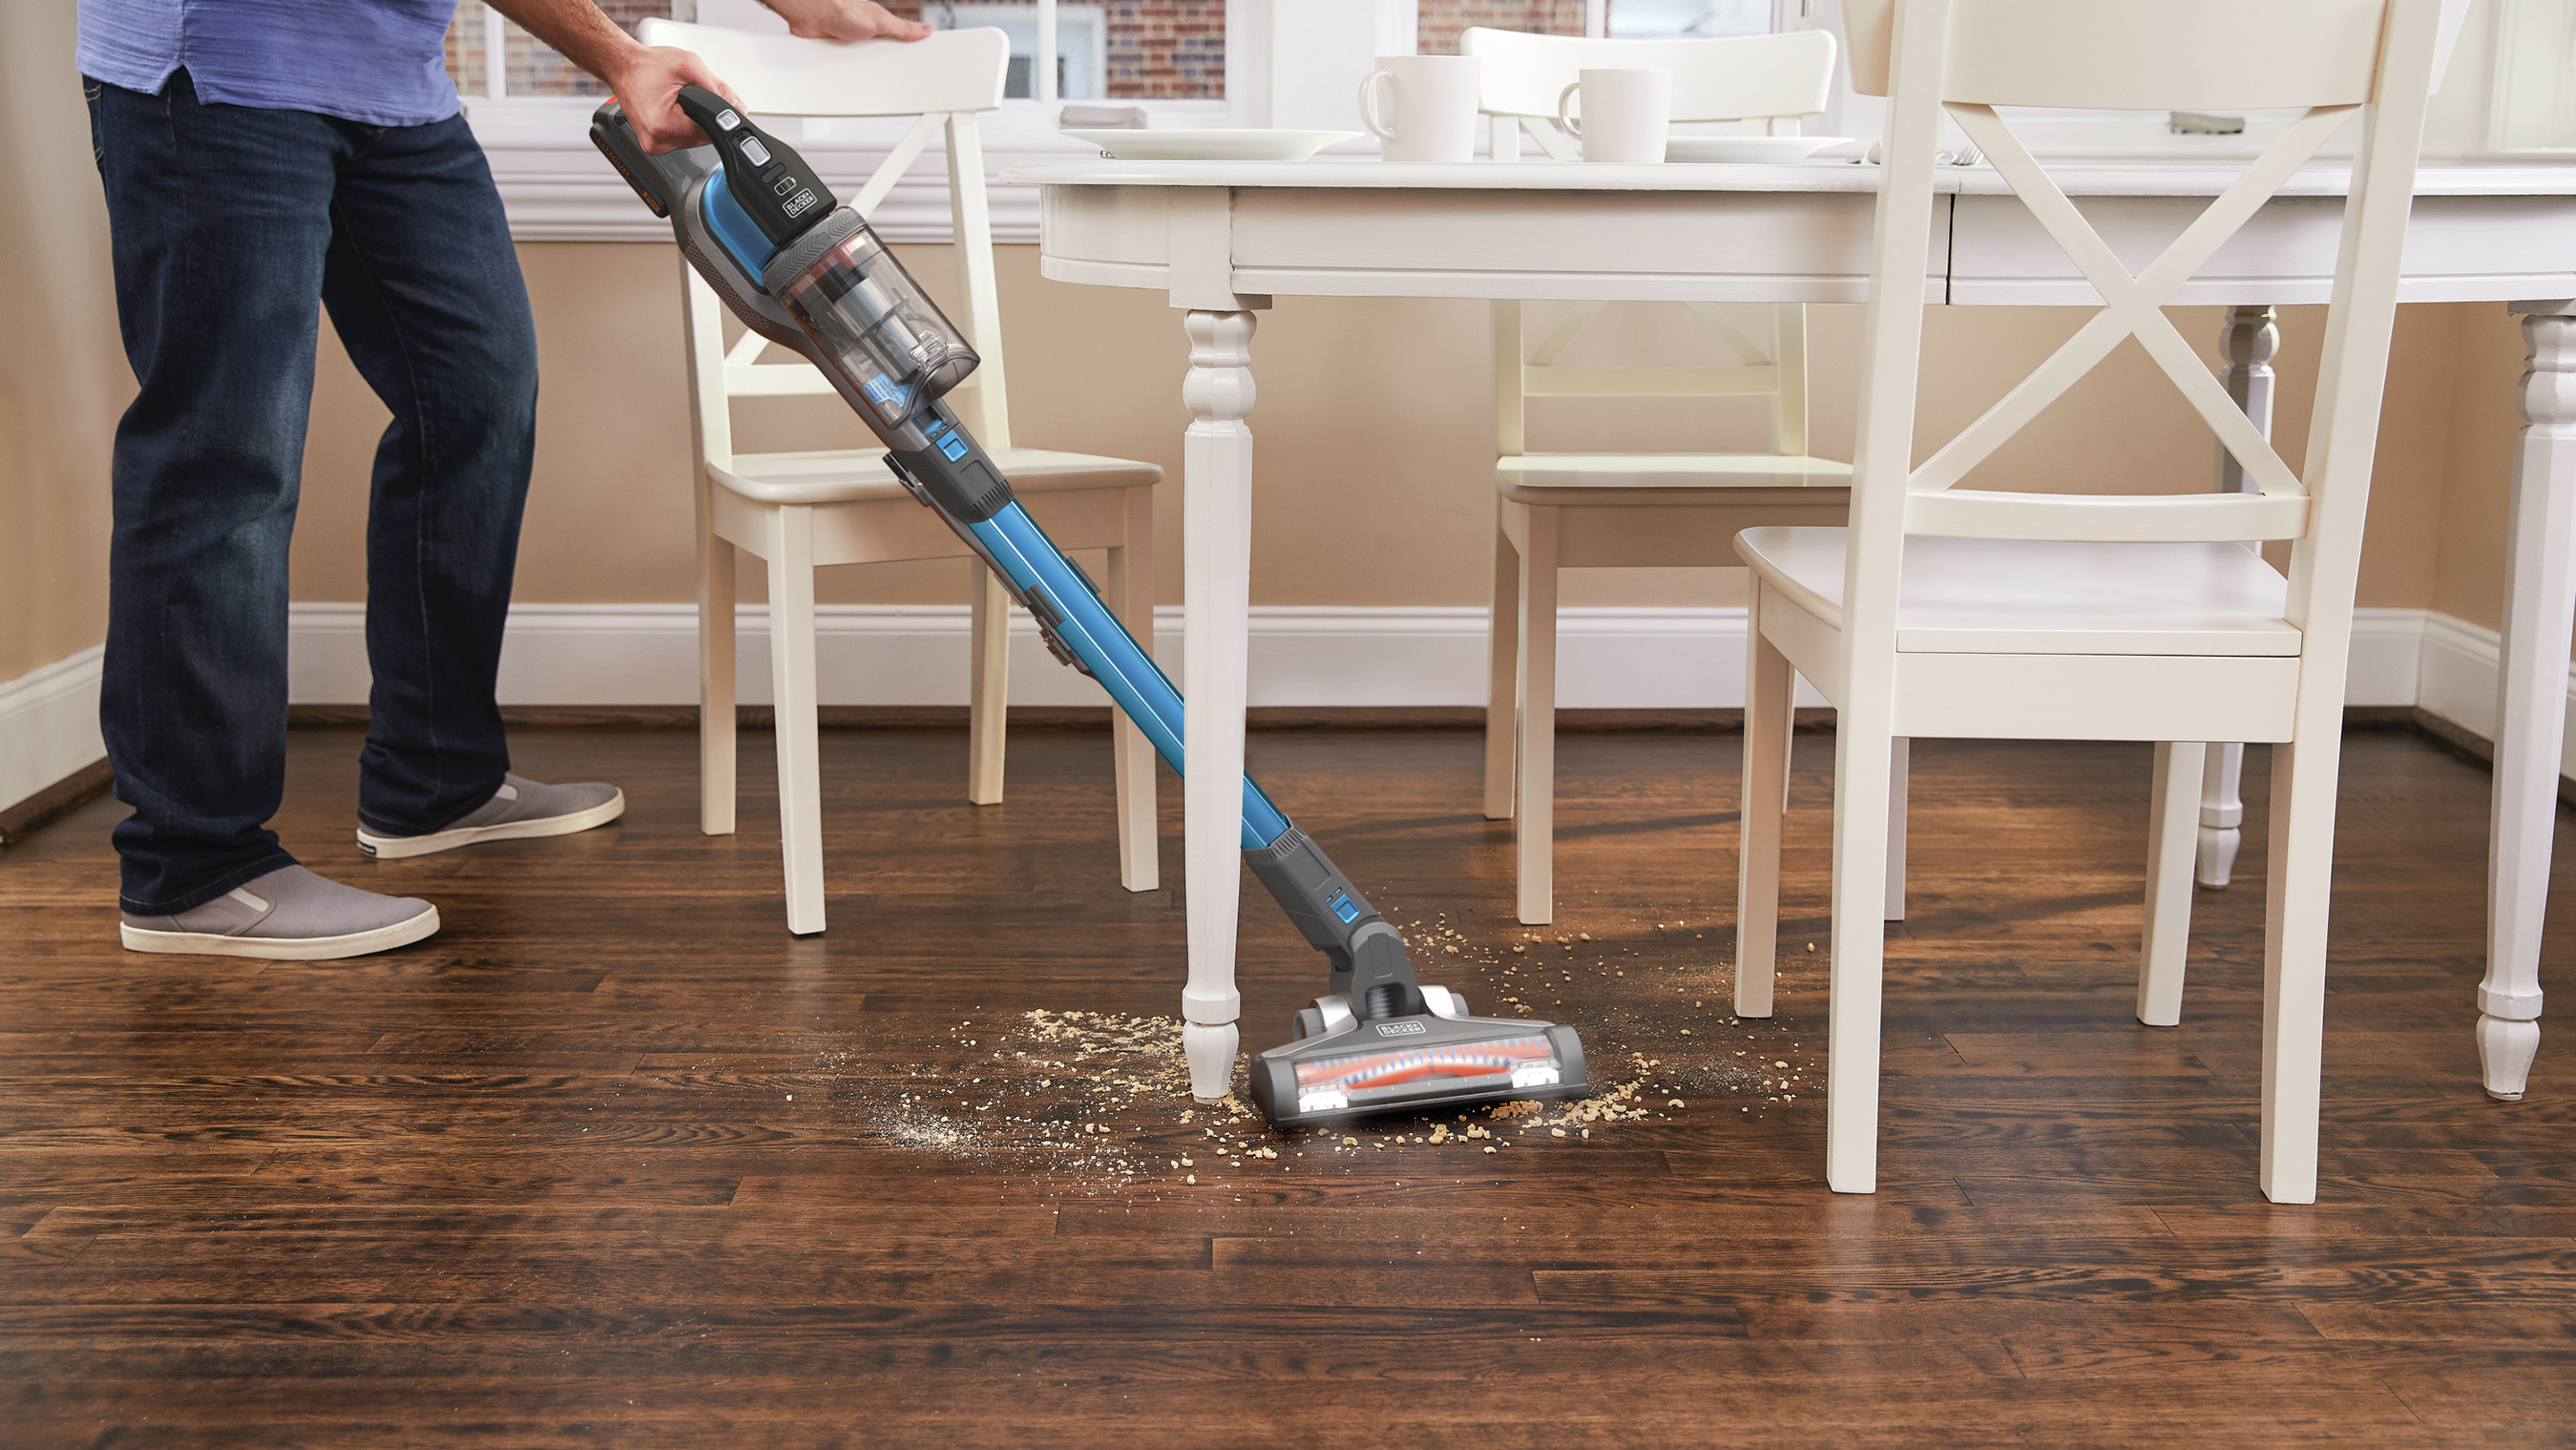 The 3X Cleaning System Tackles Dirt, Dust & Debris